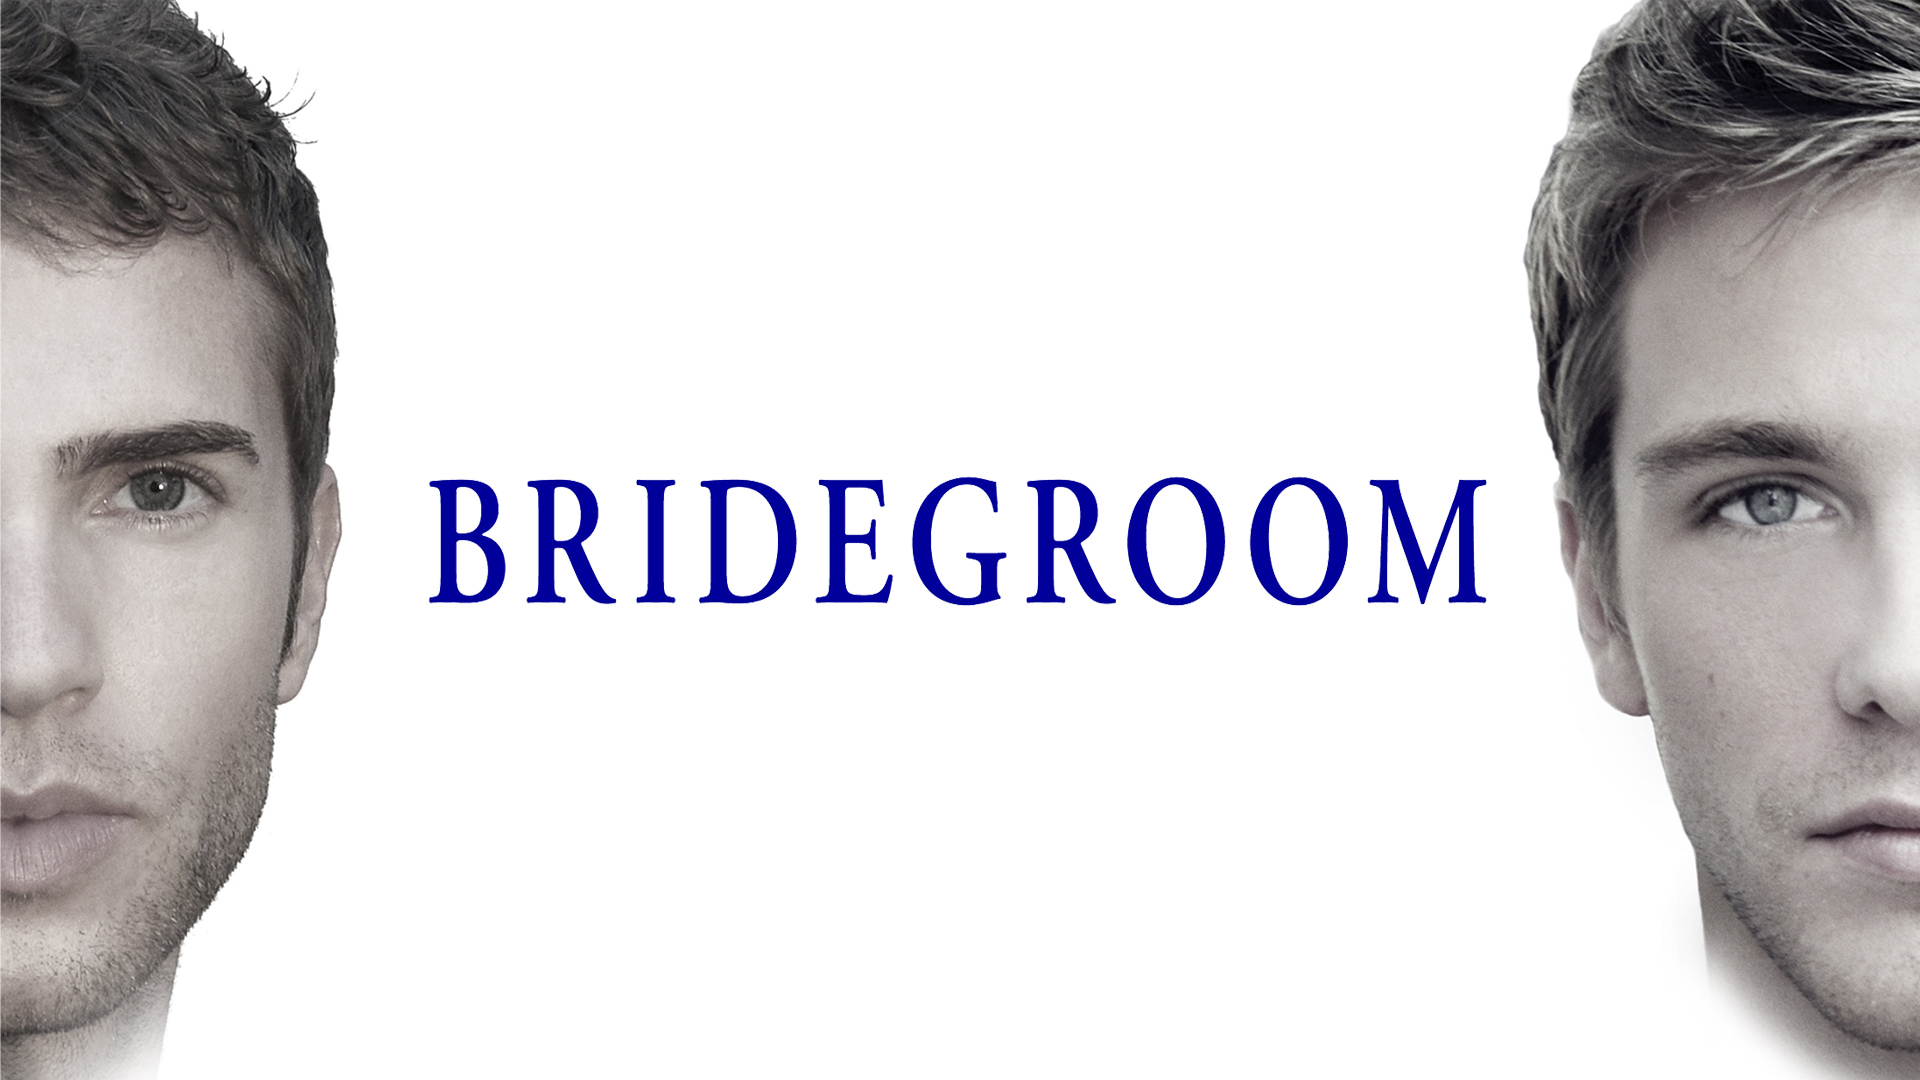 Bridegroom